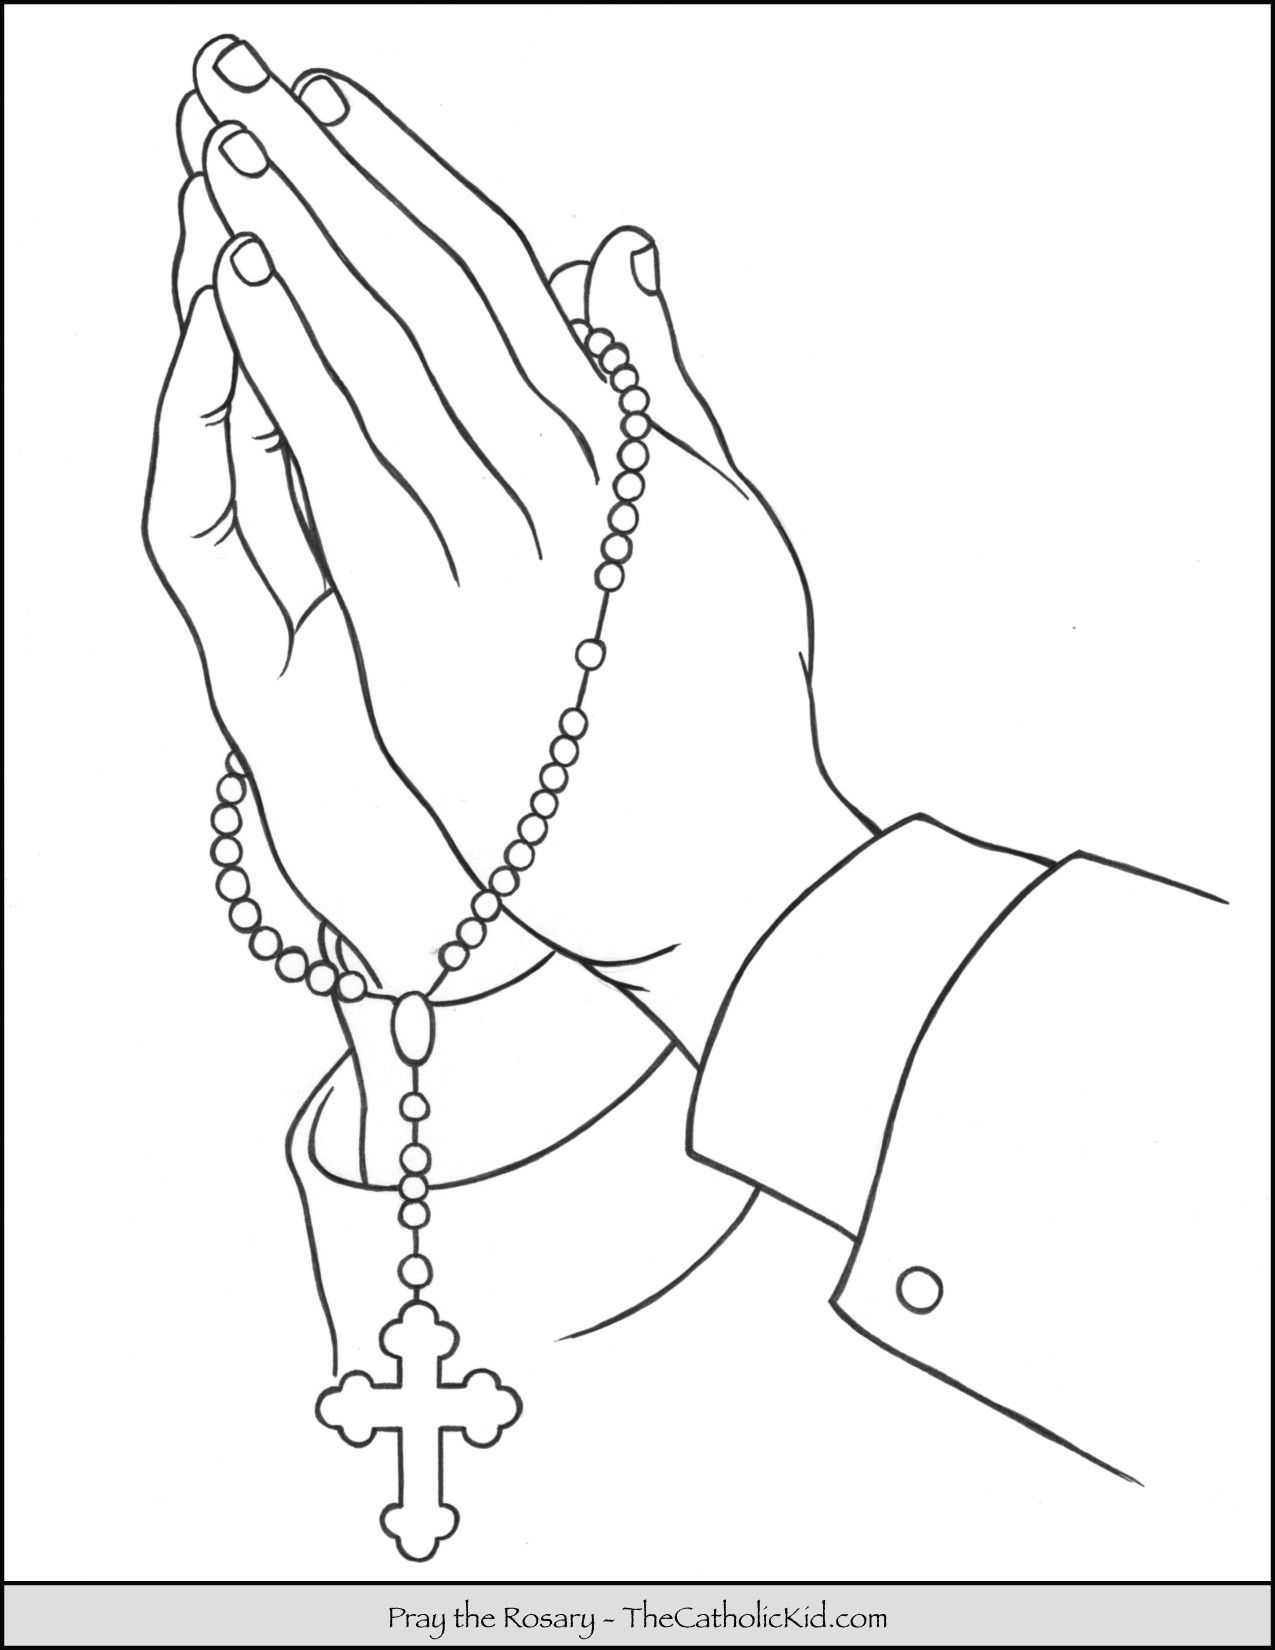 Rosary Hands Praying Coloring Page Thecatholickid Com Rosarybeadtattoo Rosary Hands Praying Co In 2020 Praying Hands Praying Hands With Rosary Praying Hands Drawing